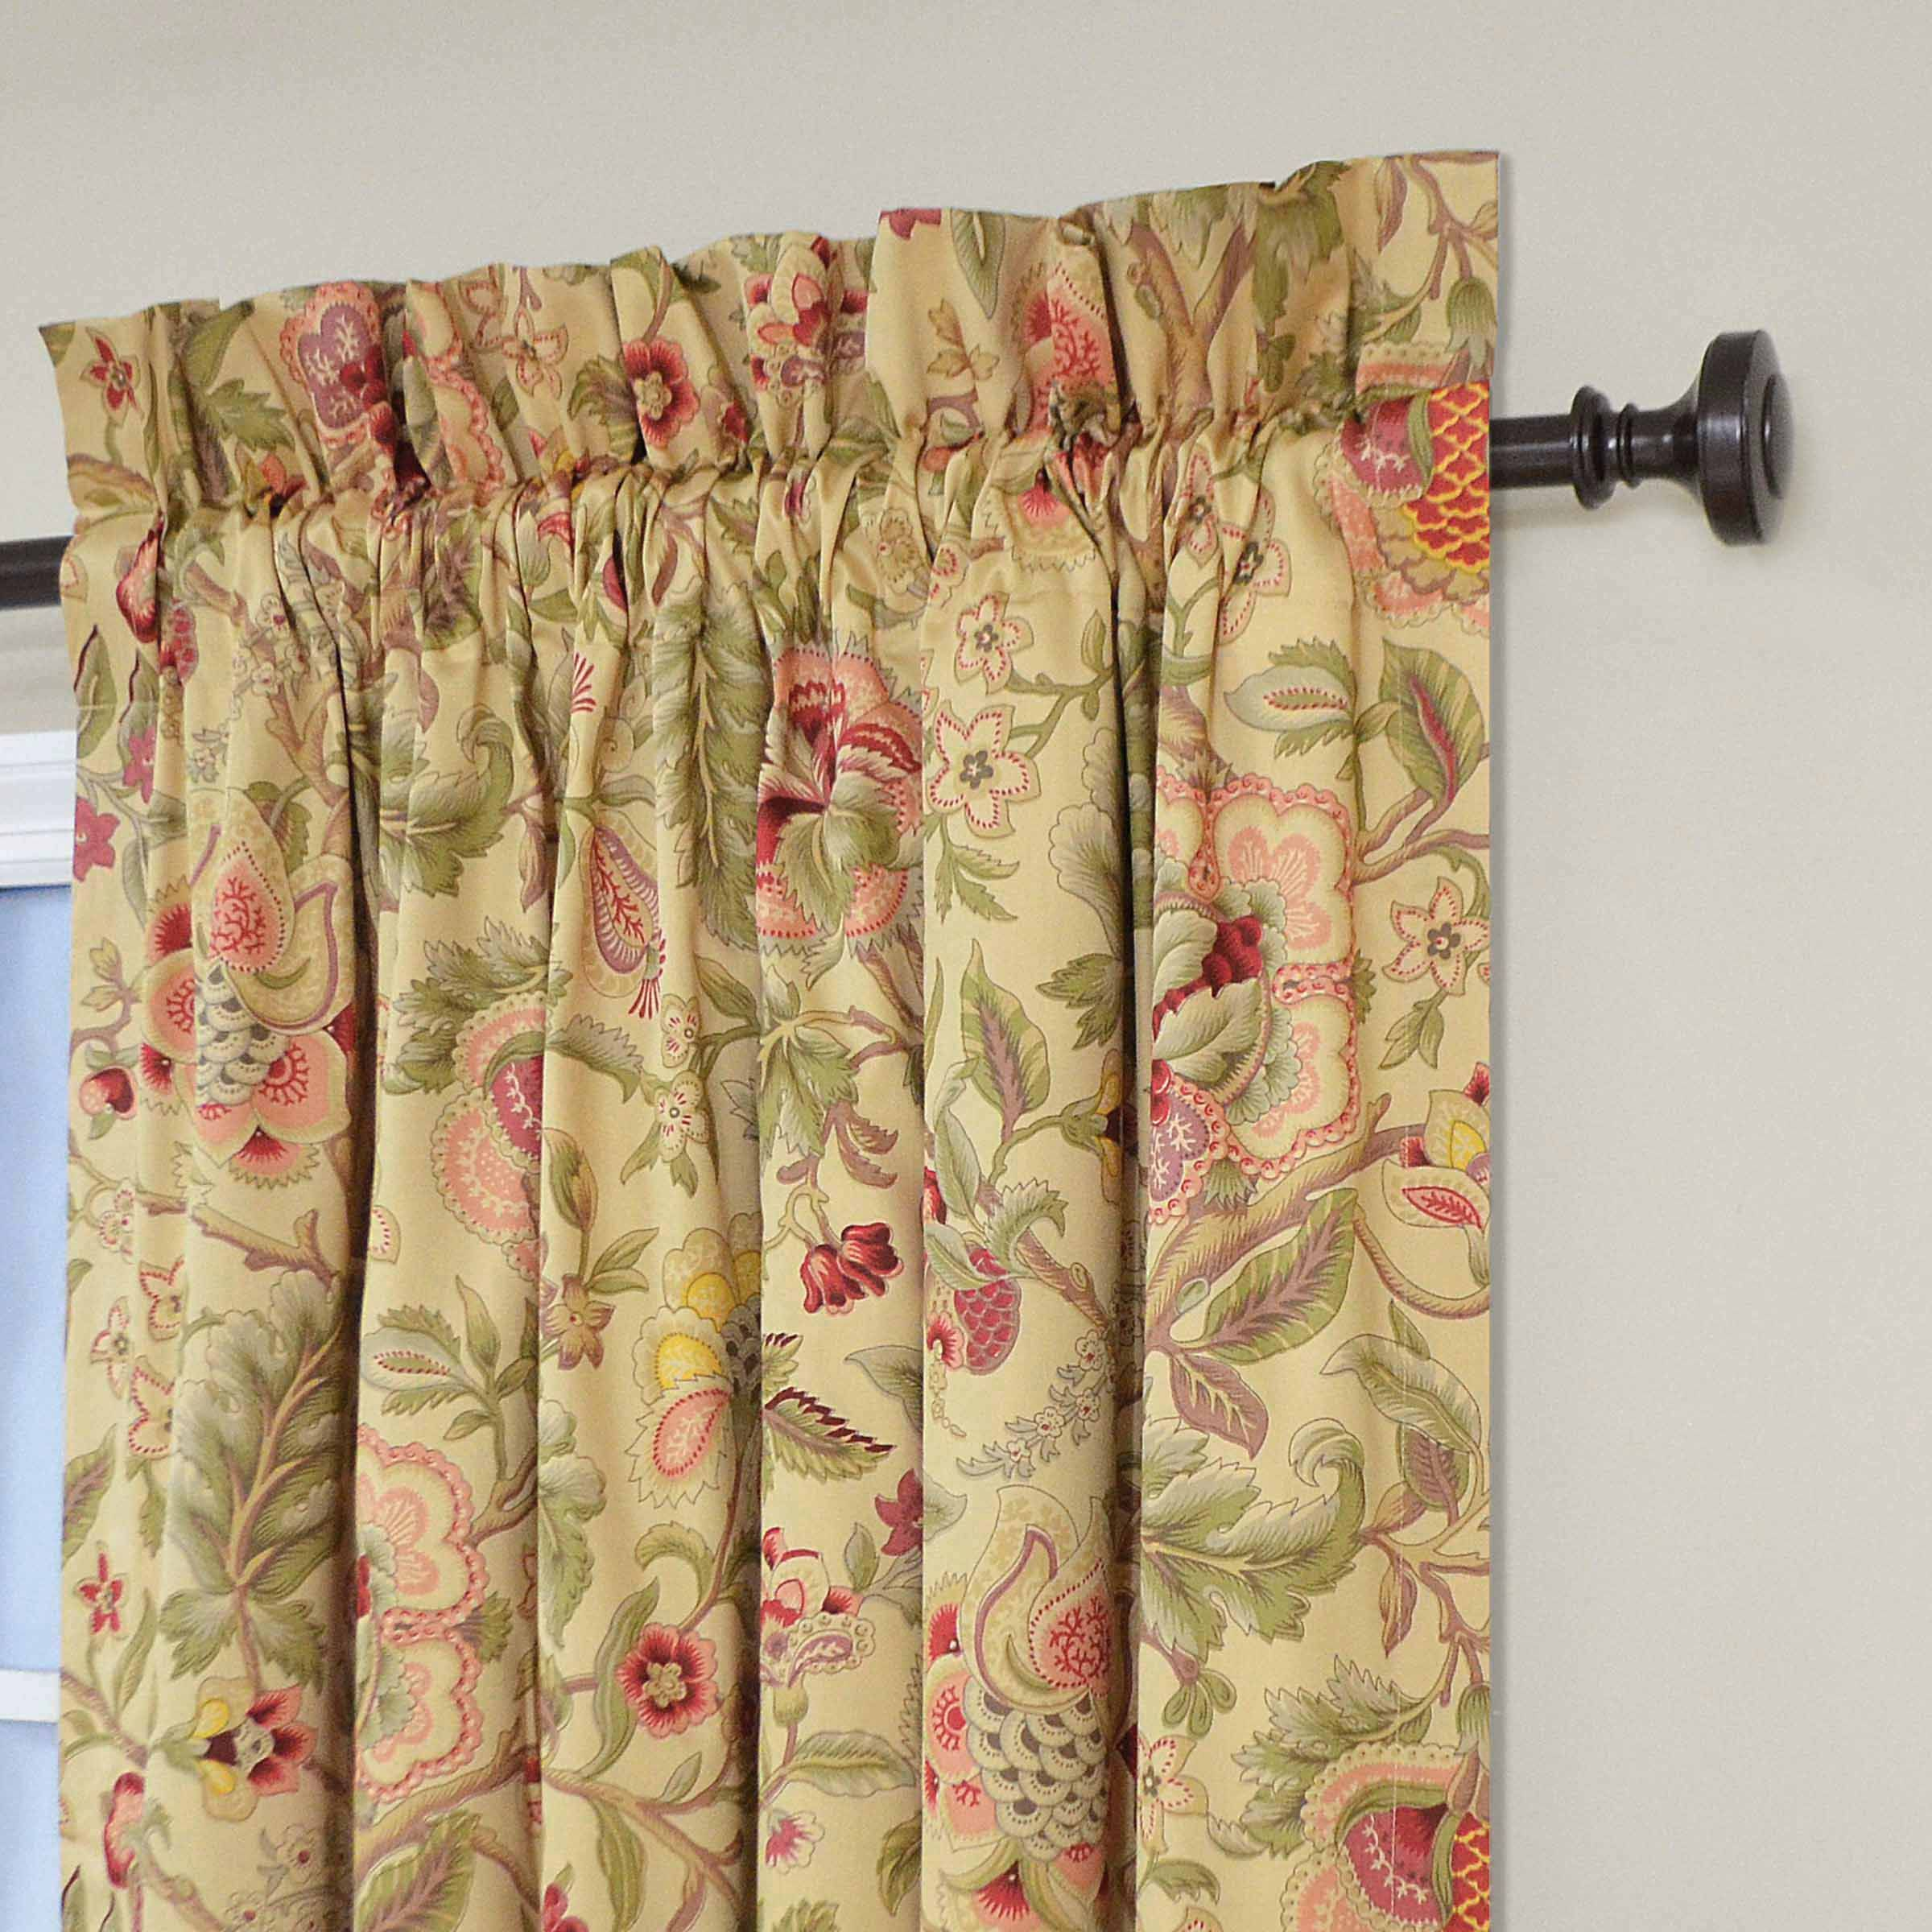 Waverly Imperial Dress Antique Curtain Panel Walmart Com In 2021 Floral Room Rod Pocket Curtains Curtains